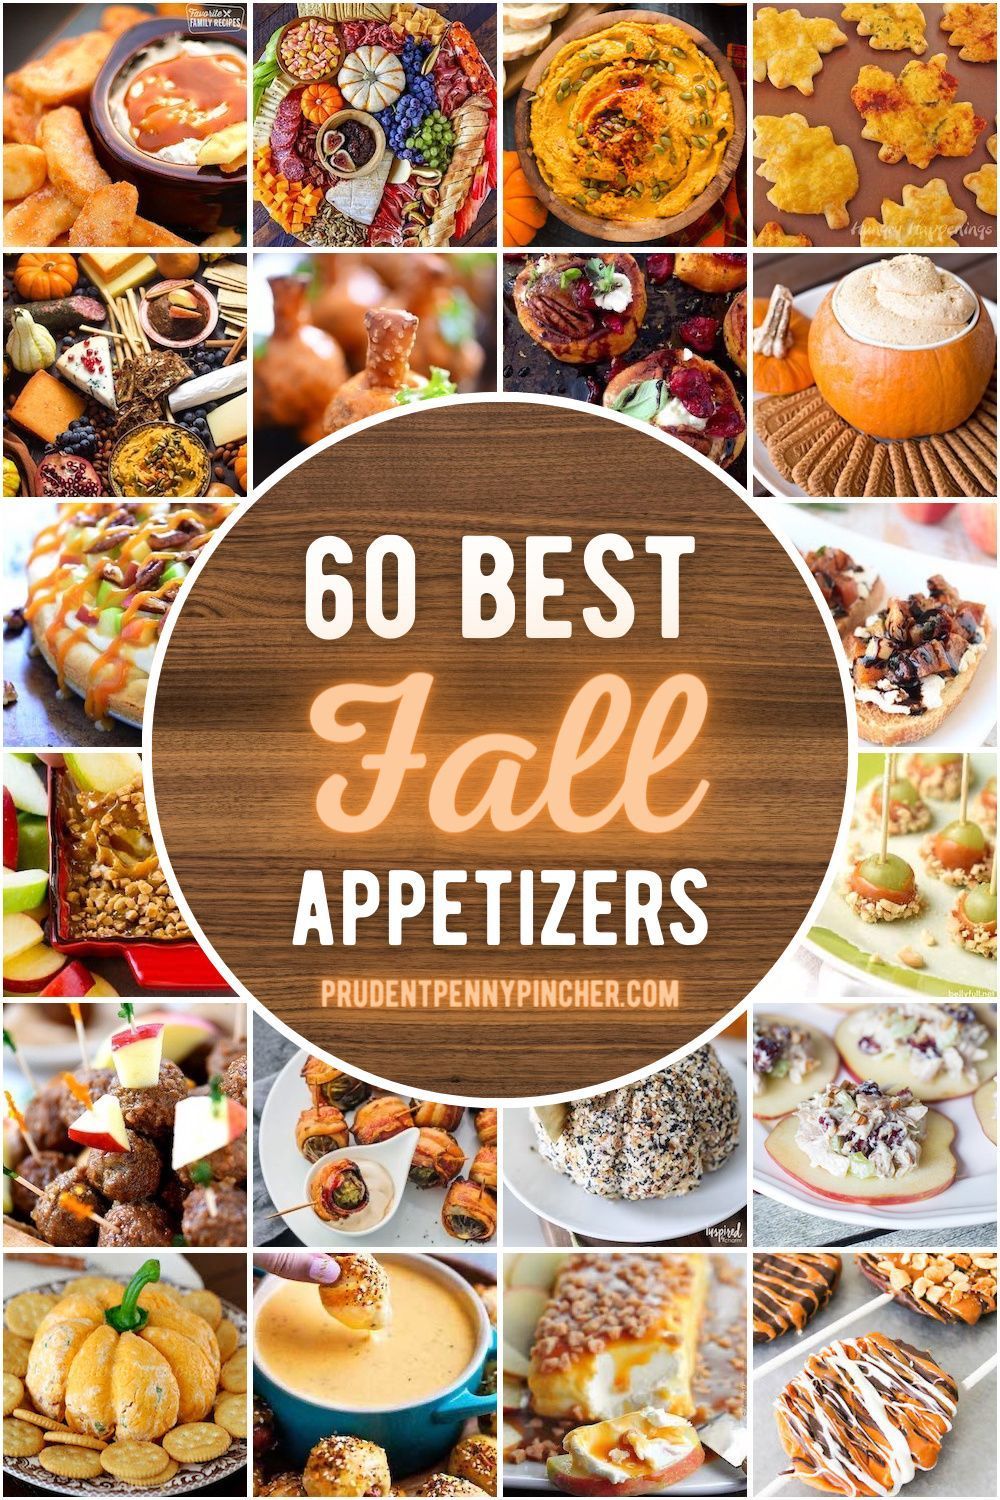 65 Festive Thanksgiving Appetizers In 2020 Thanksgiving Appetizers Festive Thanksgiving Thanksgiving Dishes